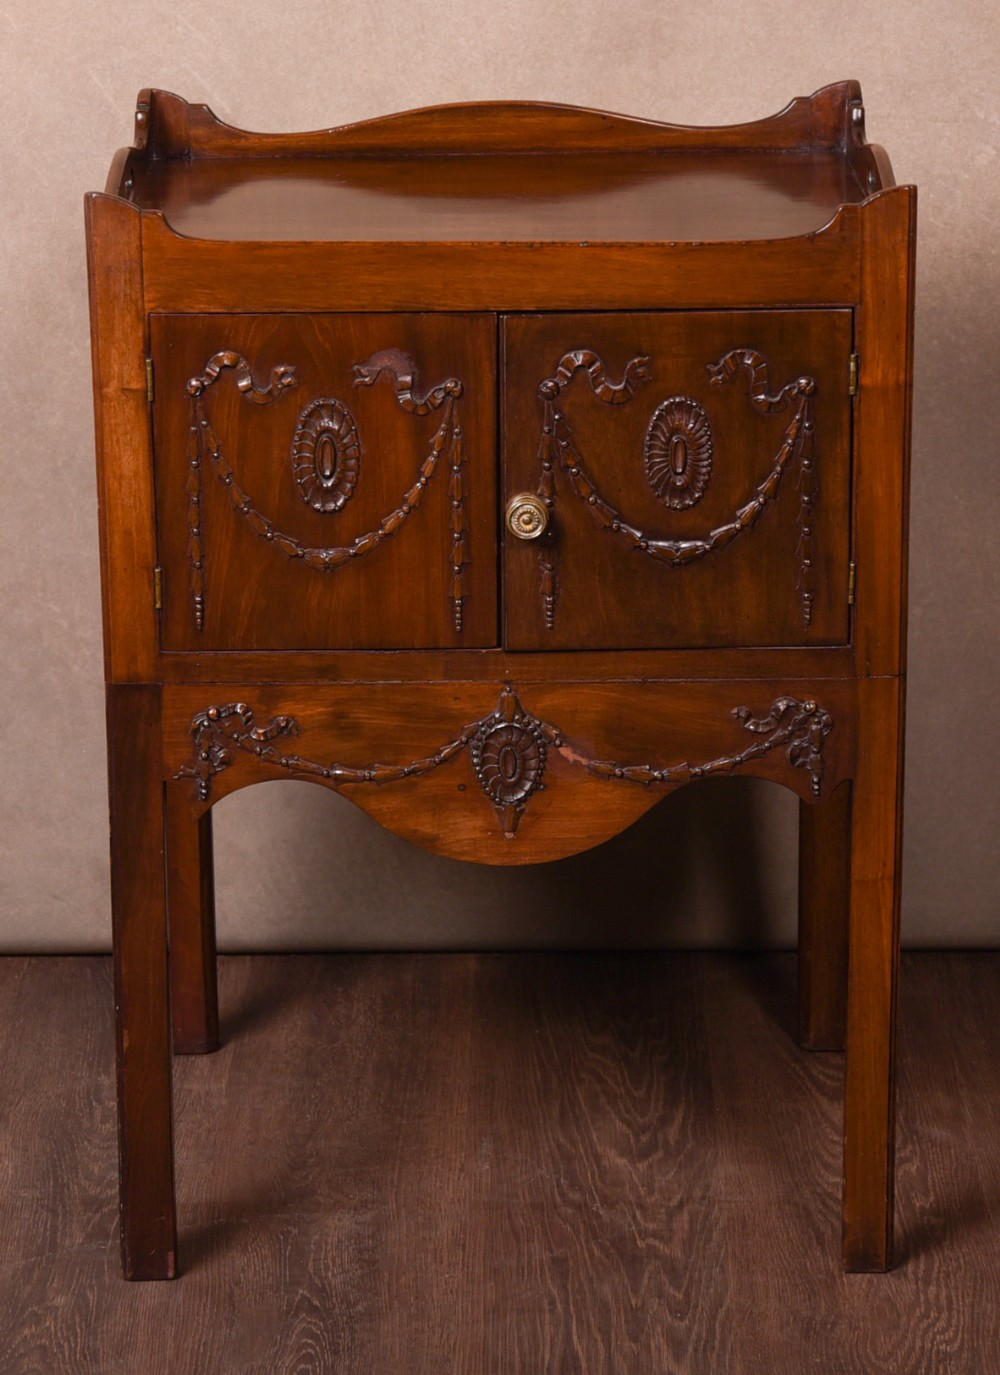 19th century adams style mahogany bedside cabinet